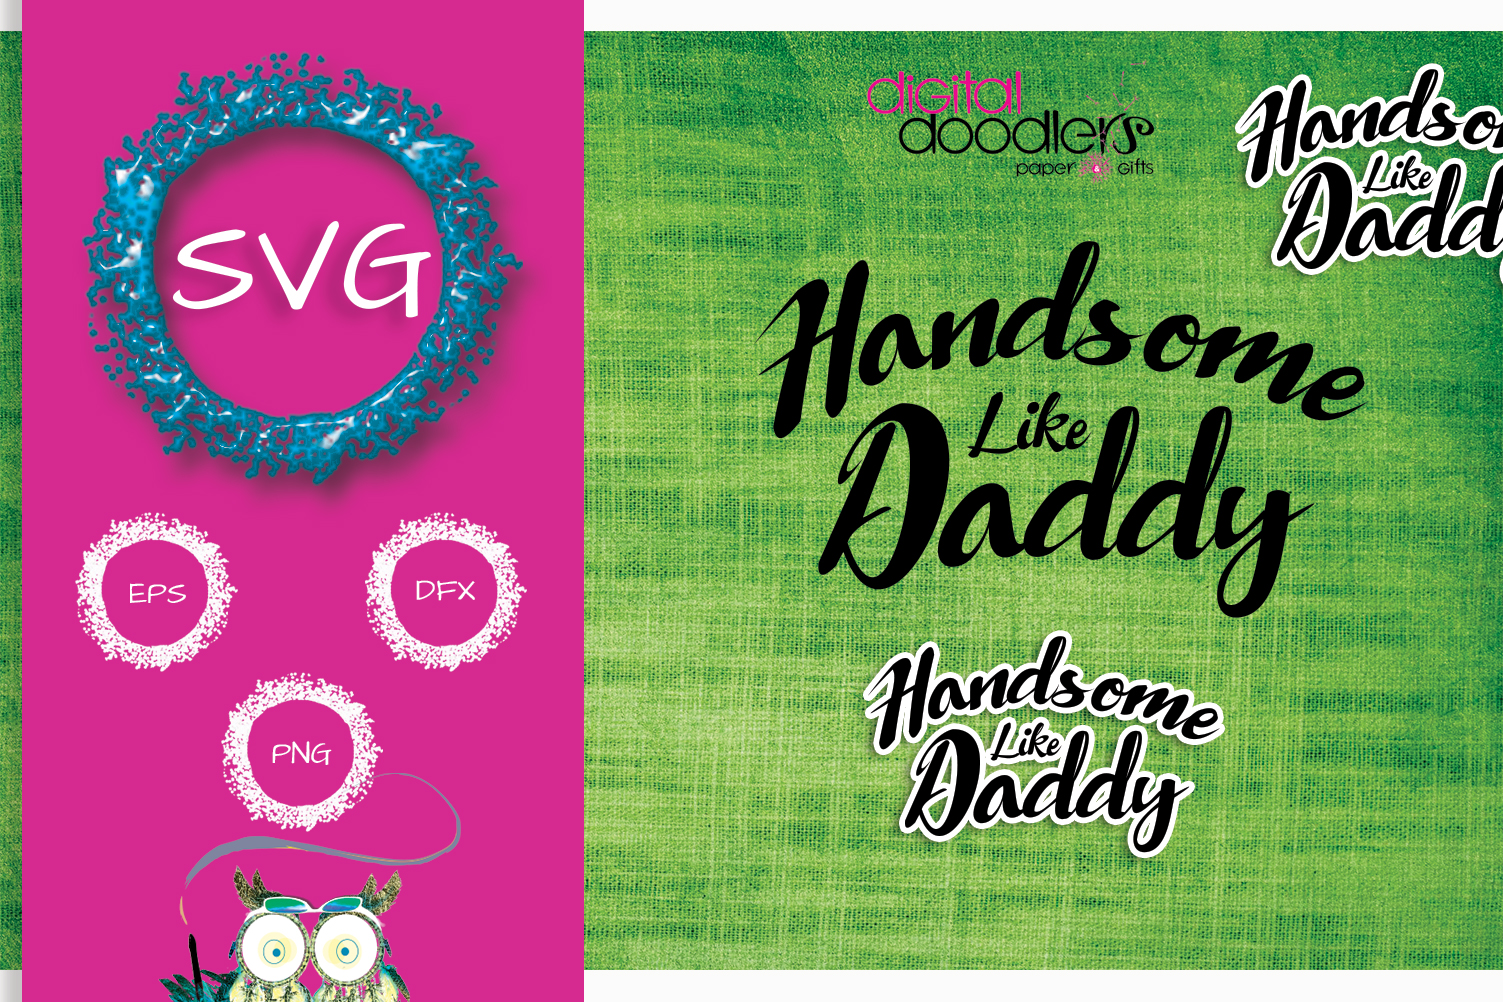 Handsome Like Daddy example image 1